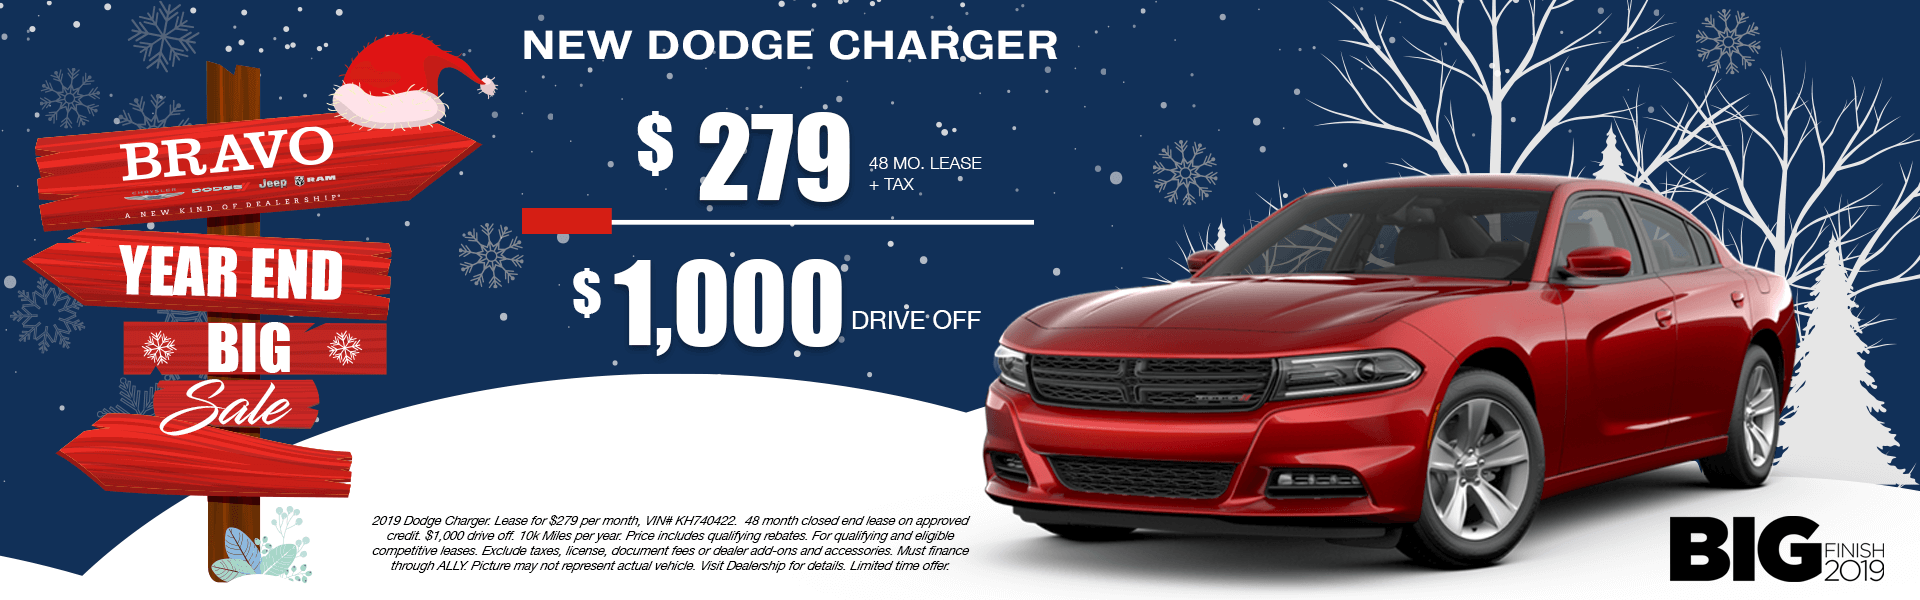 Dodge Charger-Lease